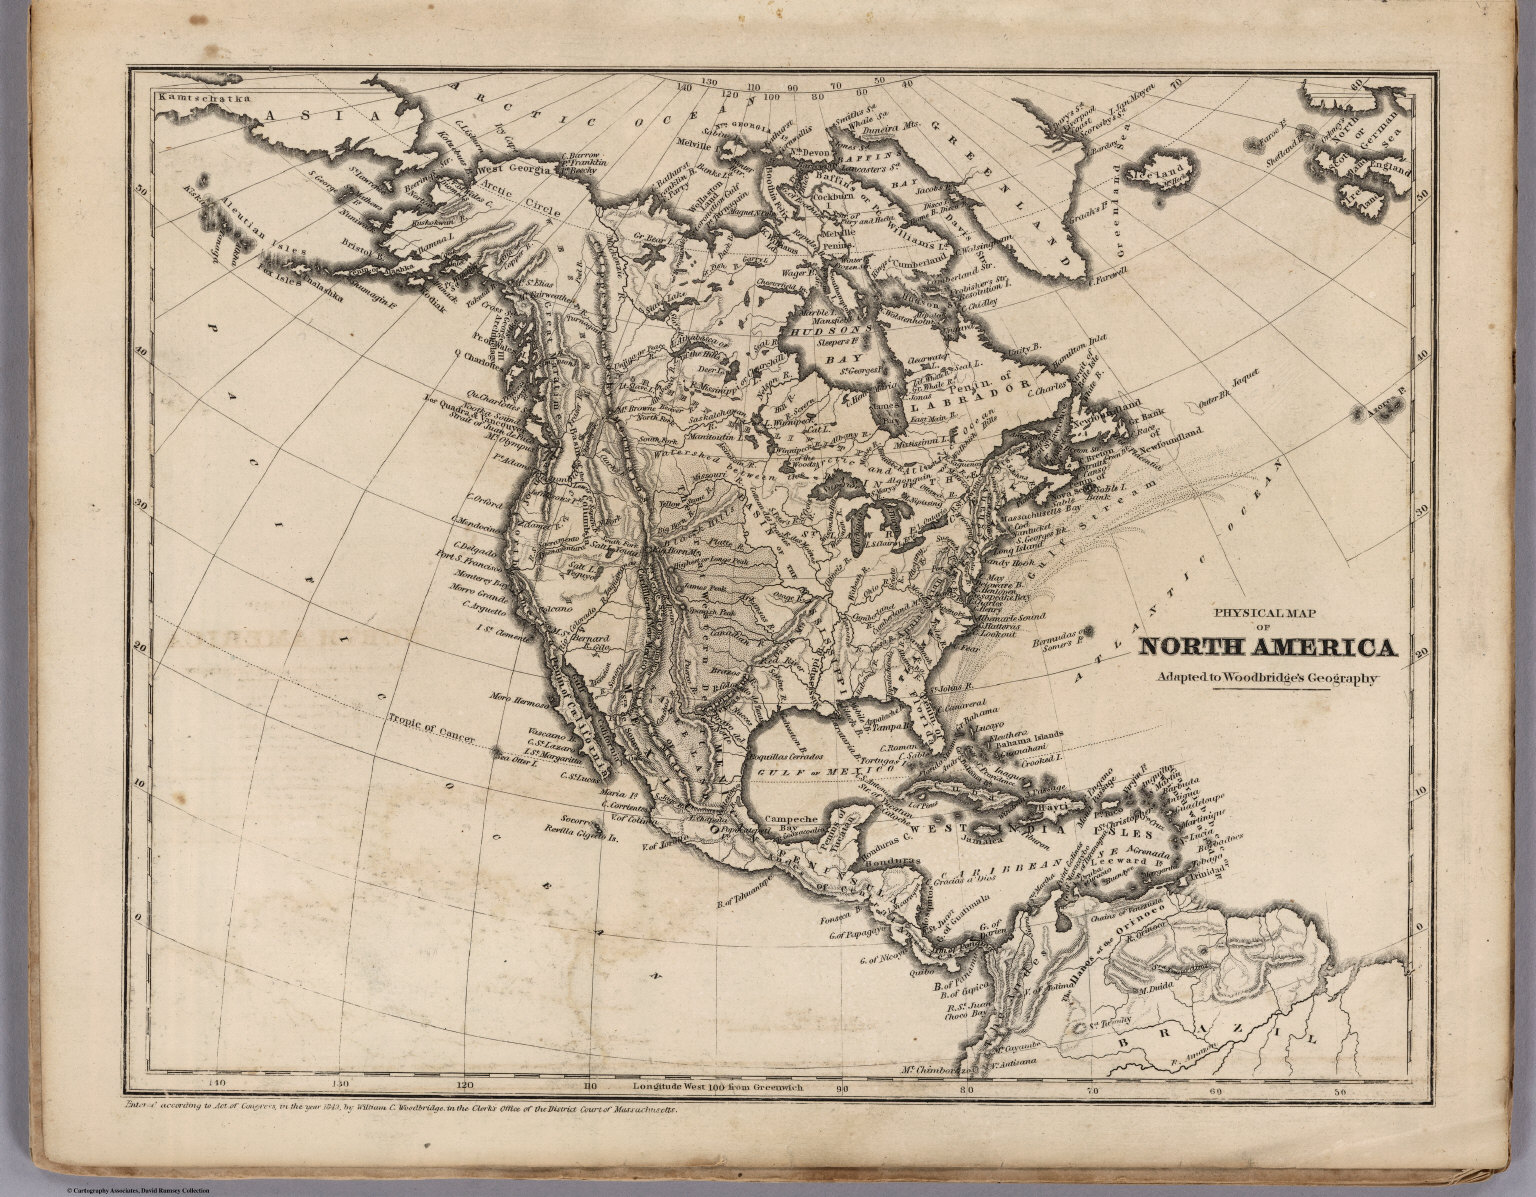 Physical Map Of North America - David Rumsey Historical Map Collection